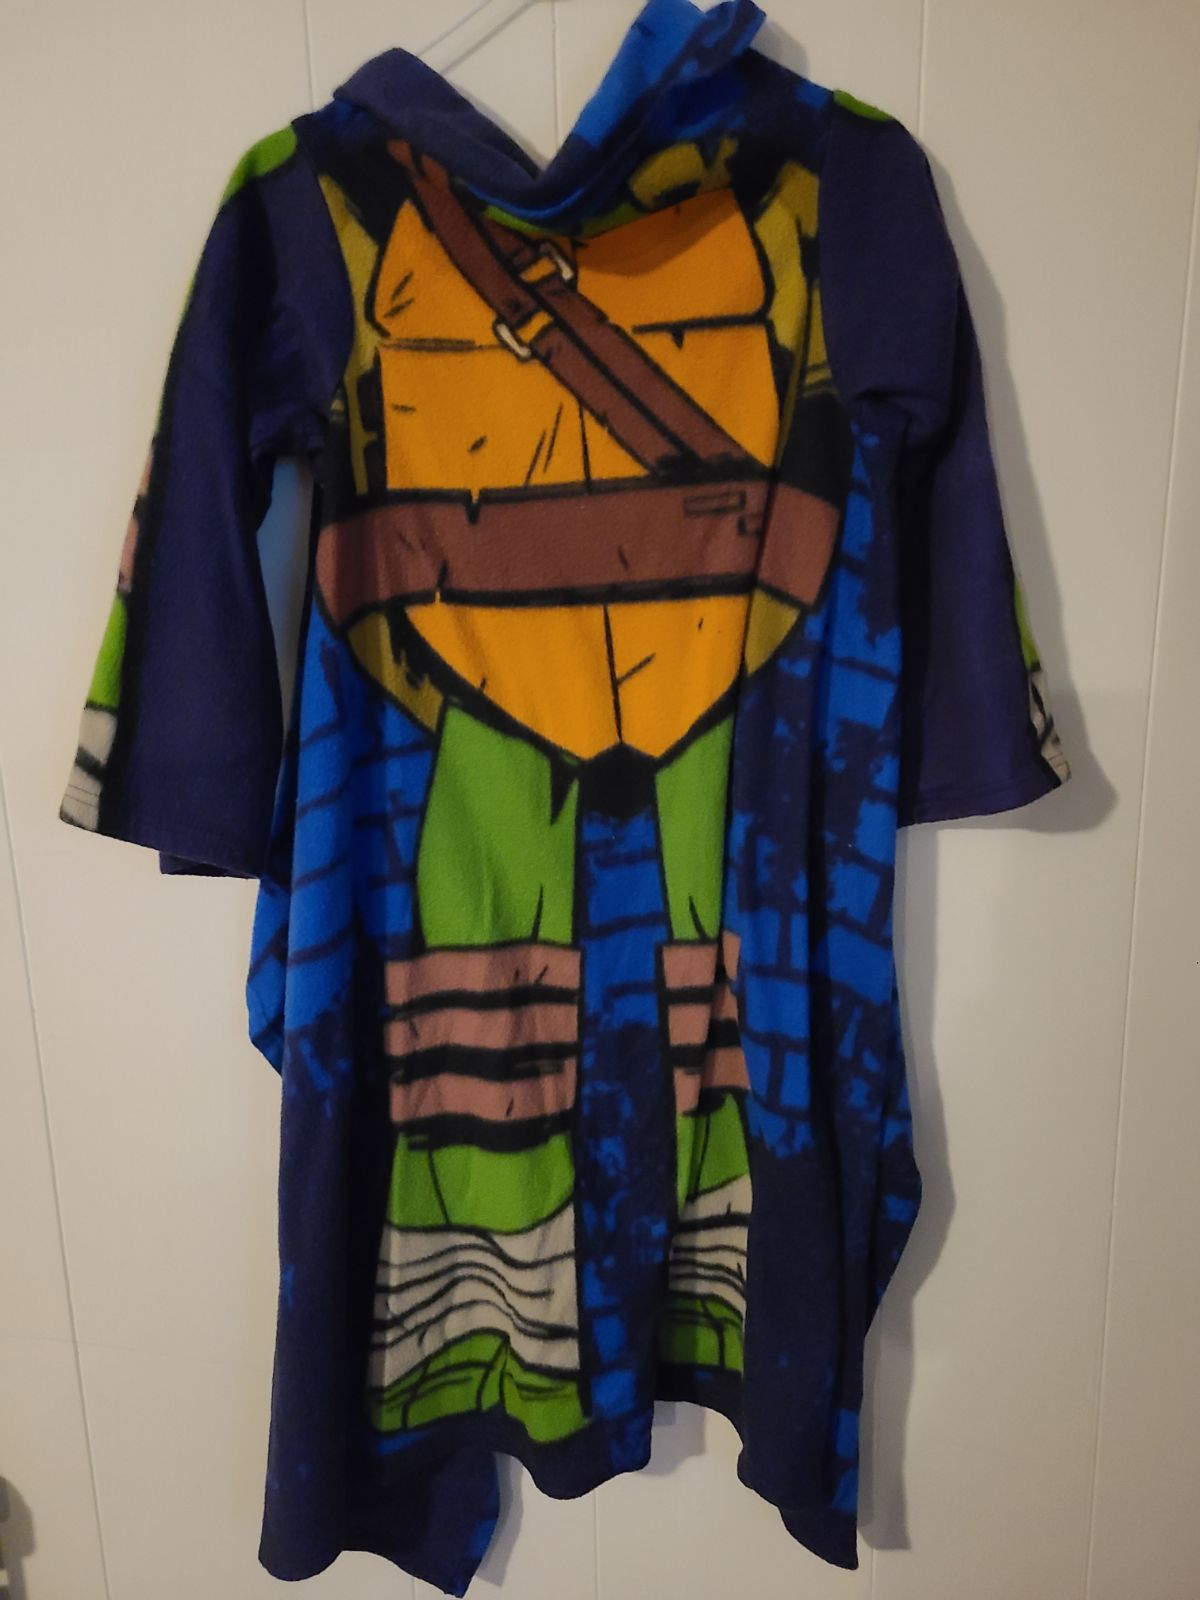 TMNT Snuggie/Wearable blanket